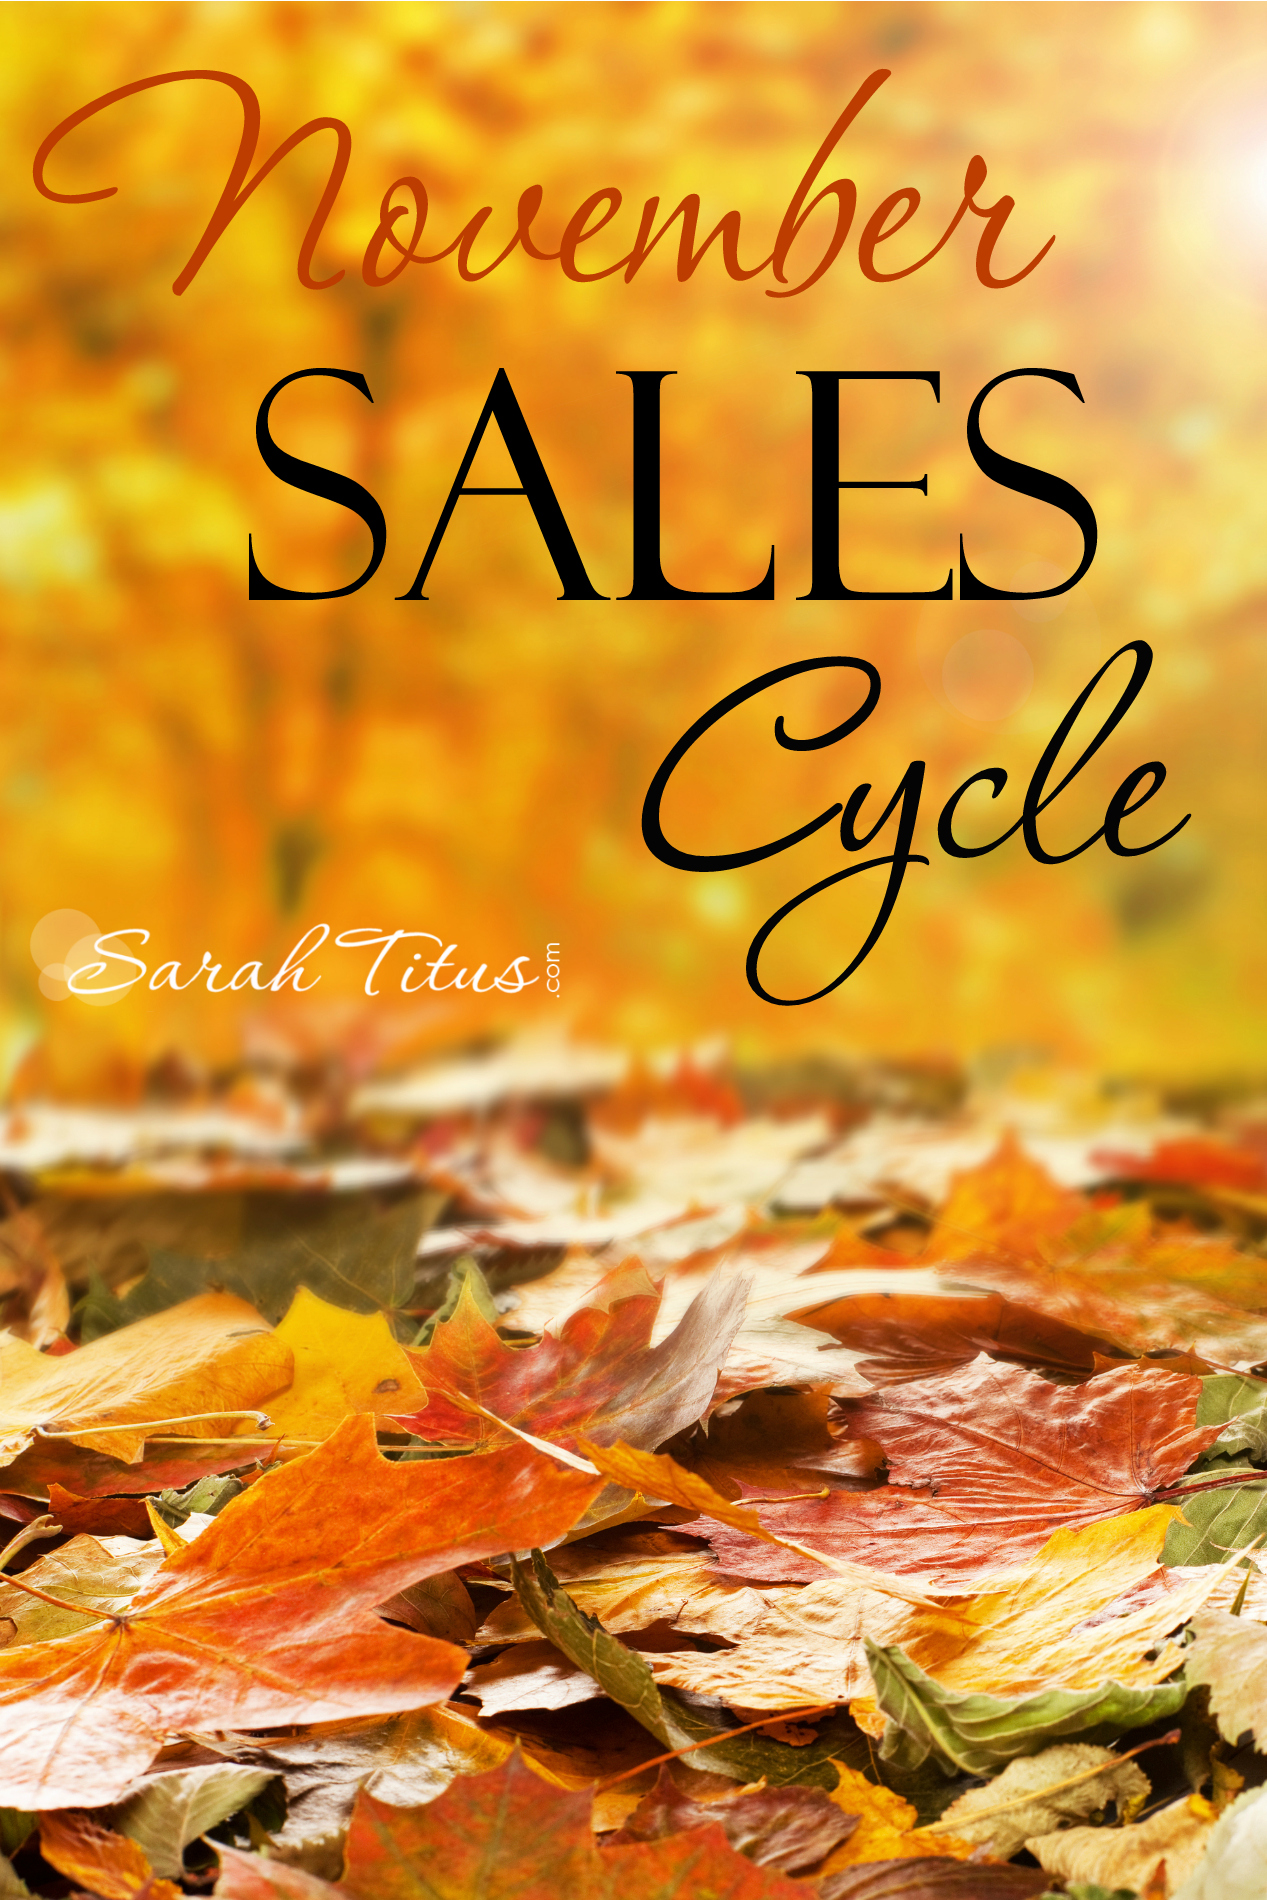 November Sales Cycle: What to Expect to See On Sale